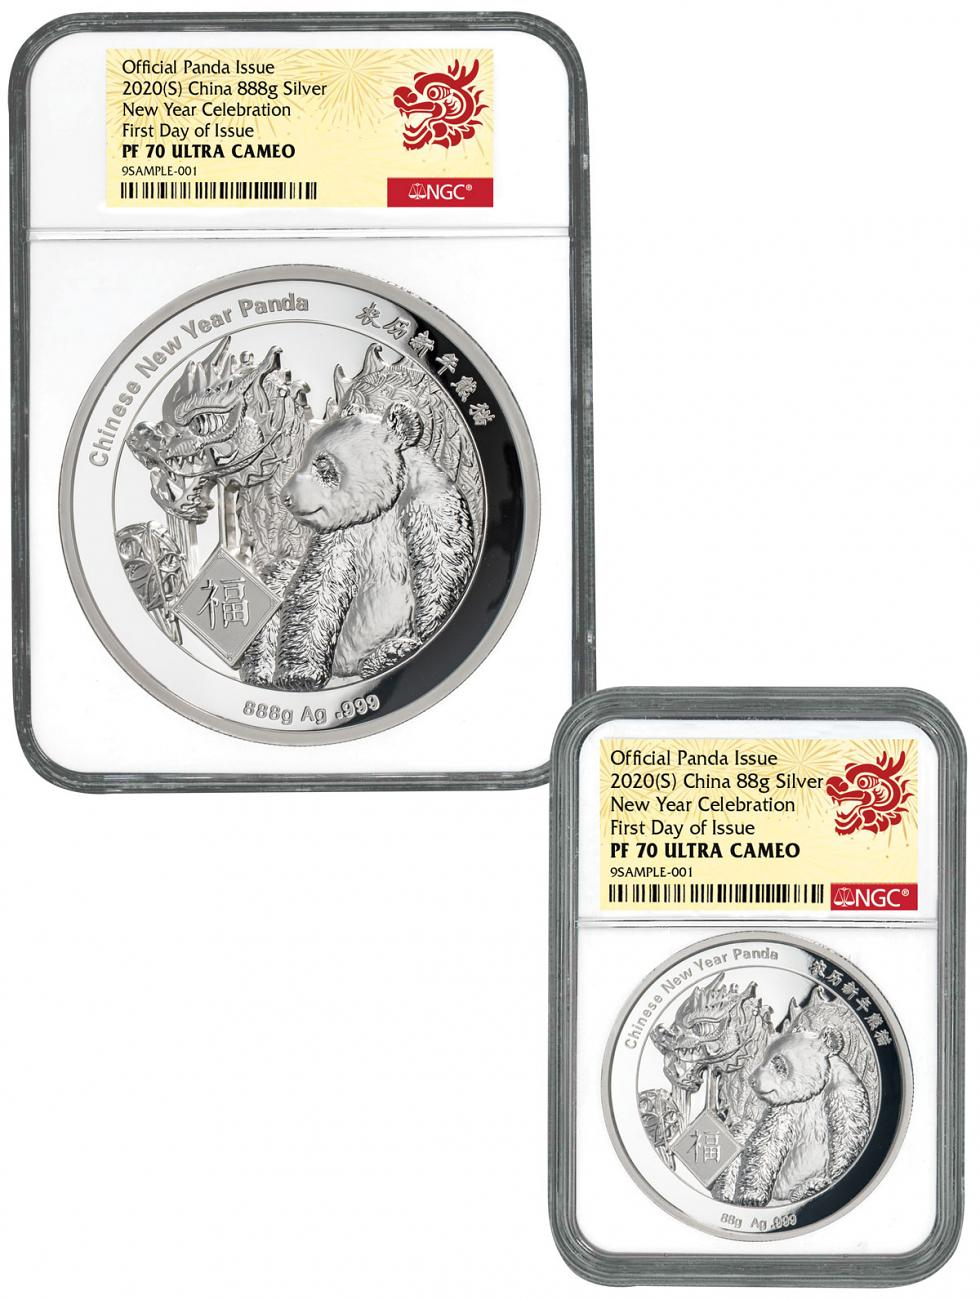 2pc - 2020 88gm/888gm Silver New Year Celebration Panda NGC PF70 UC FDI Scarce and Unique Division